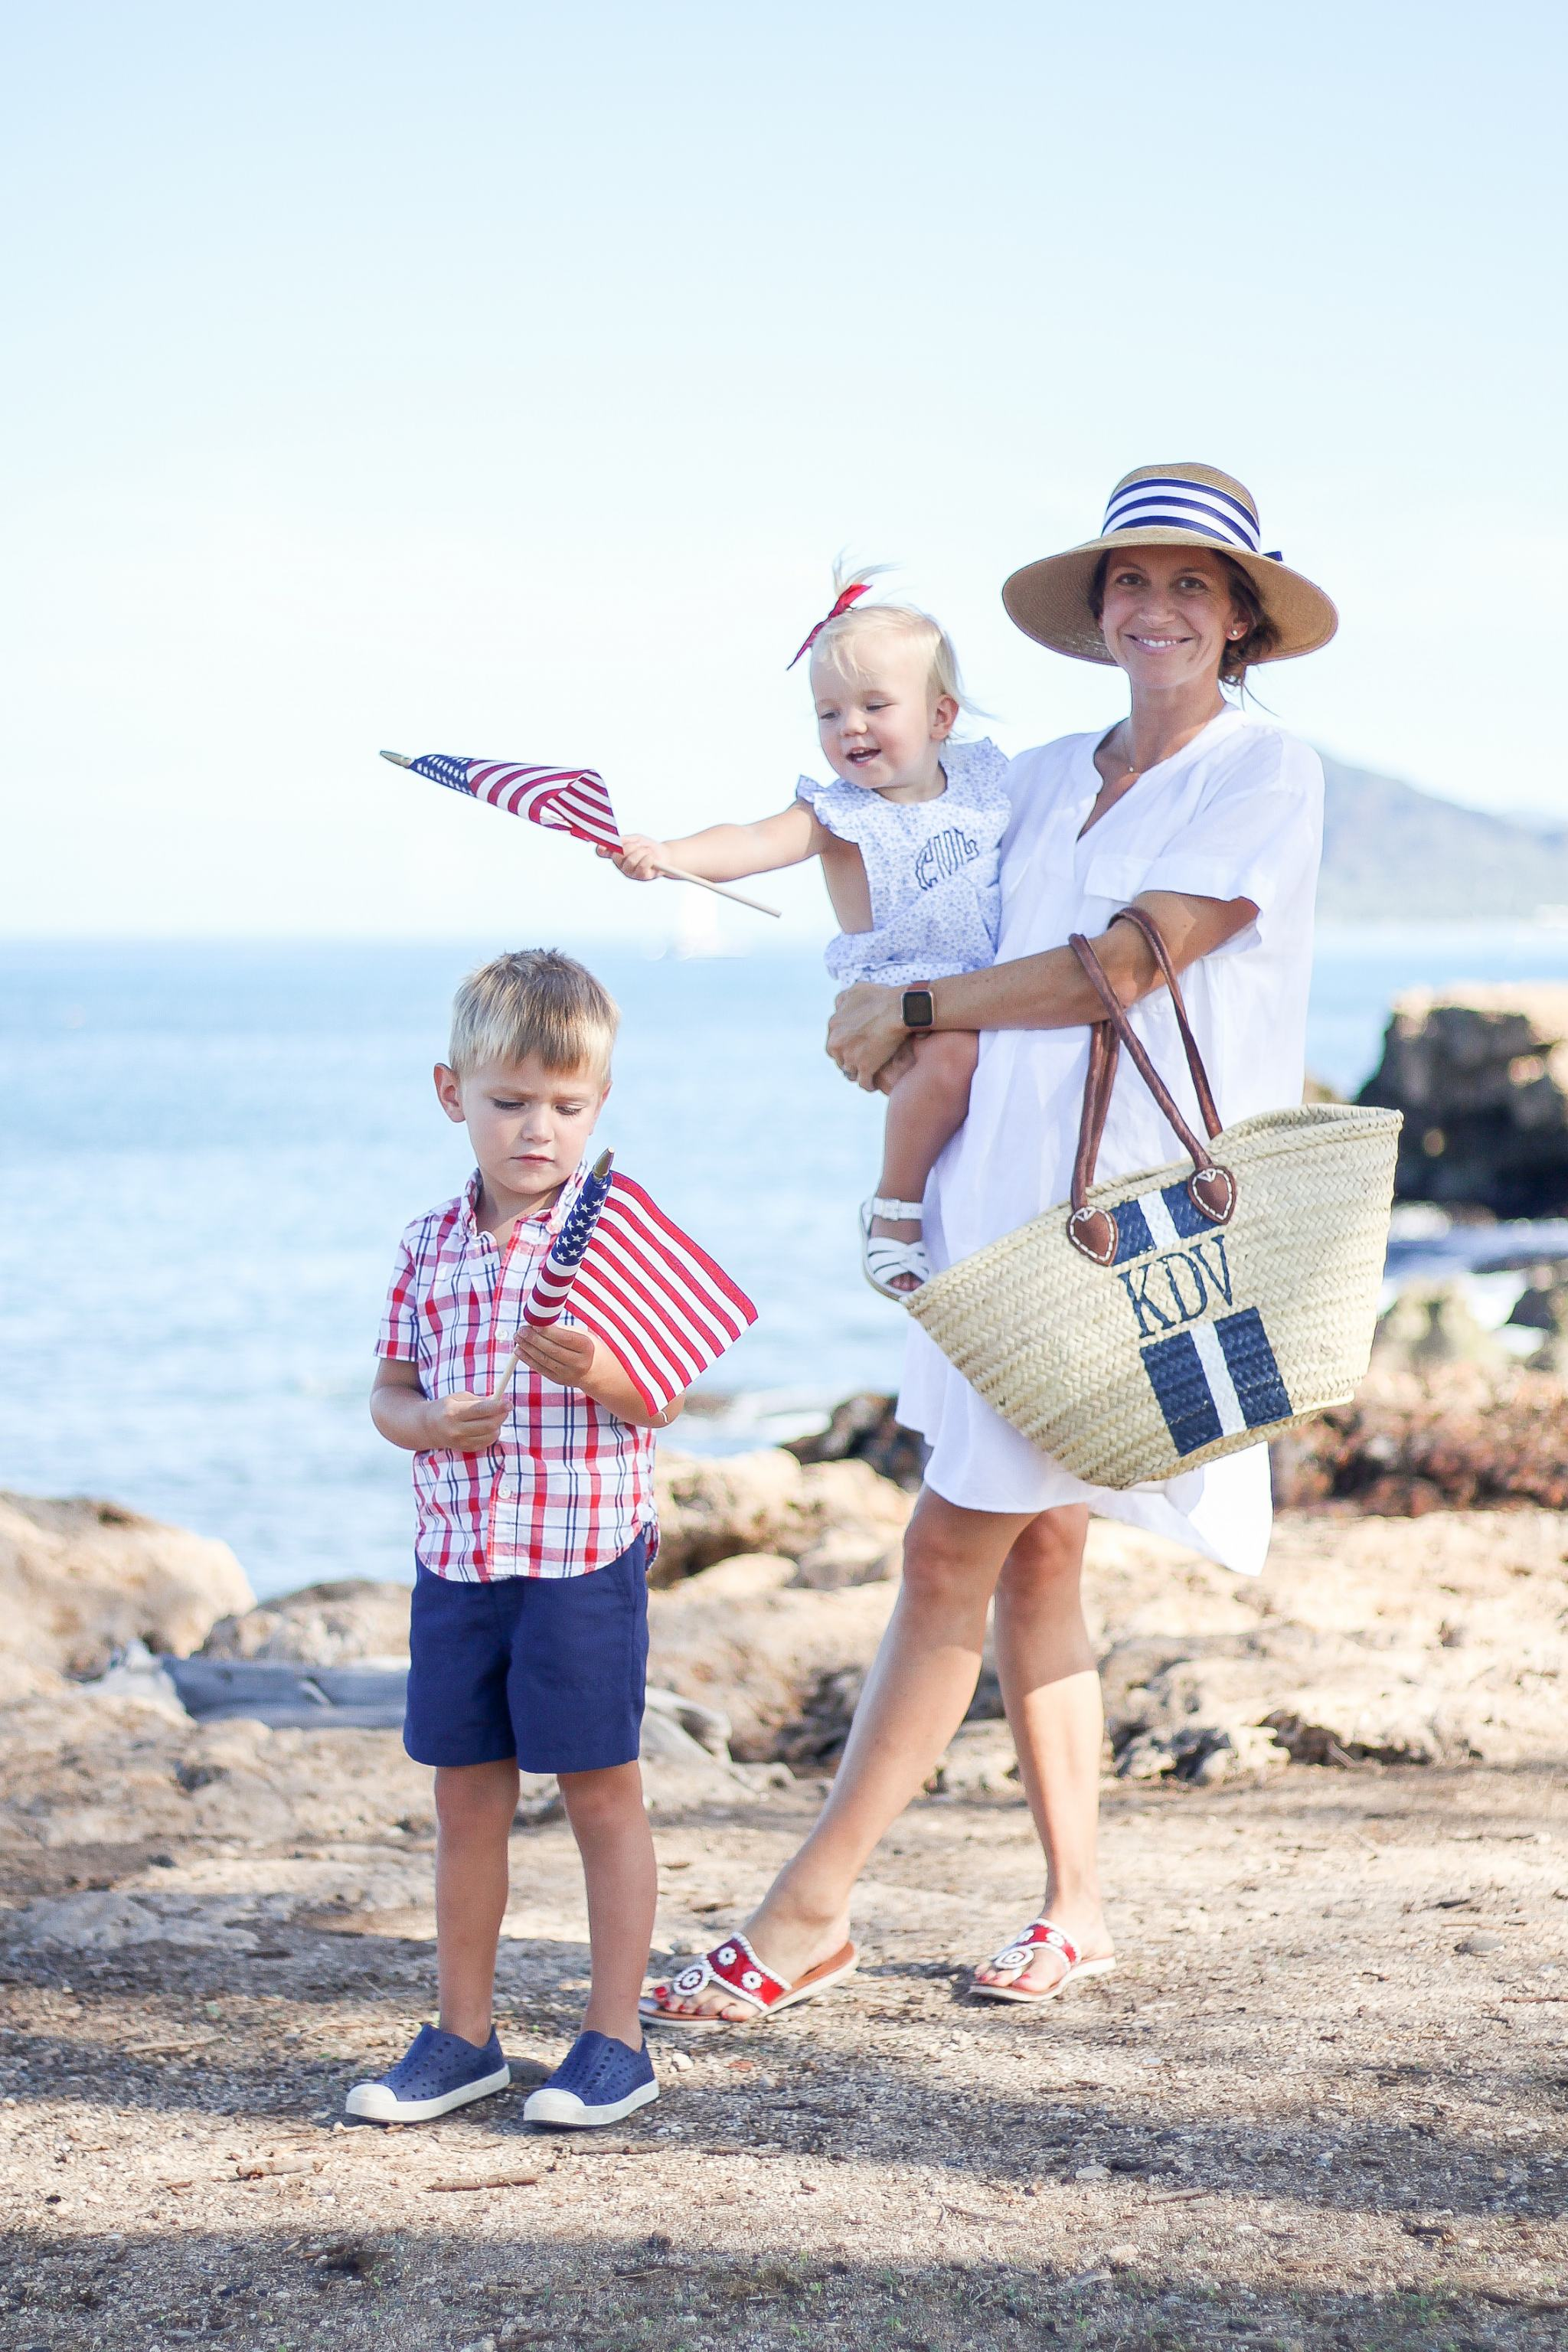 Americana - basket bag - maternity style - 4th of july - 4th of july family outfit ideas - red white and blue outfits - blue and white outfits - summer style - beach outfit ideas - sun hat with bow - sun hat with striped ribbon - monogrammed bubble